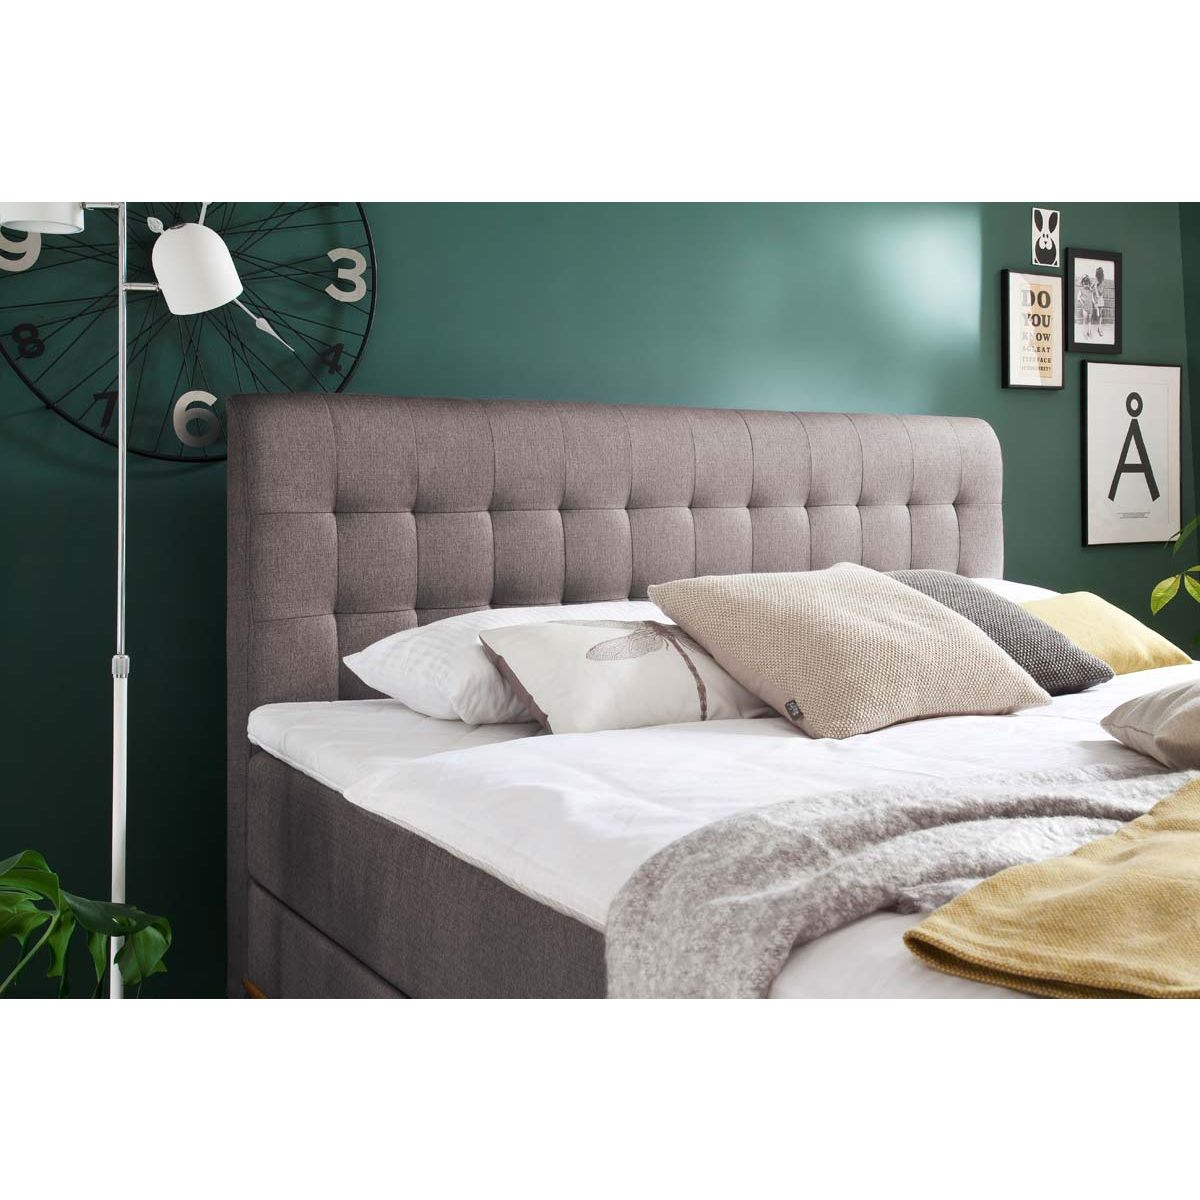 meise m bel massello boxspringbett taupe mit lieferung. Black Bedroom Furniture Sets. Home Design Ideas